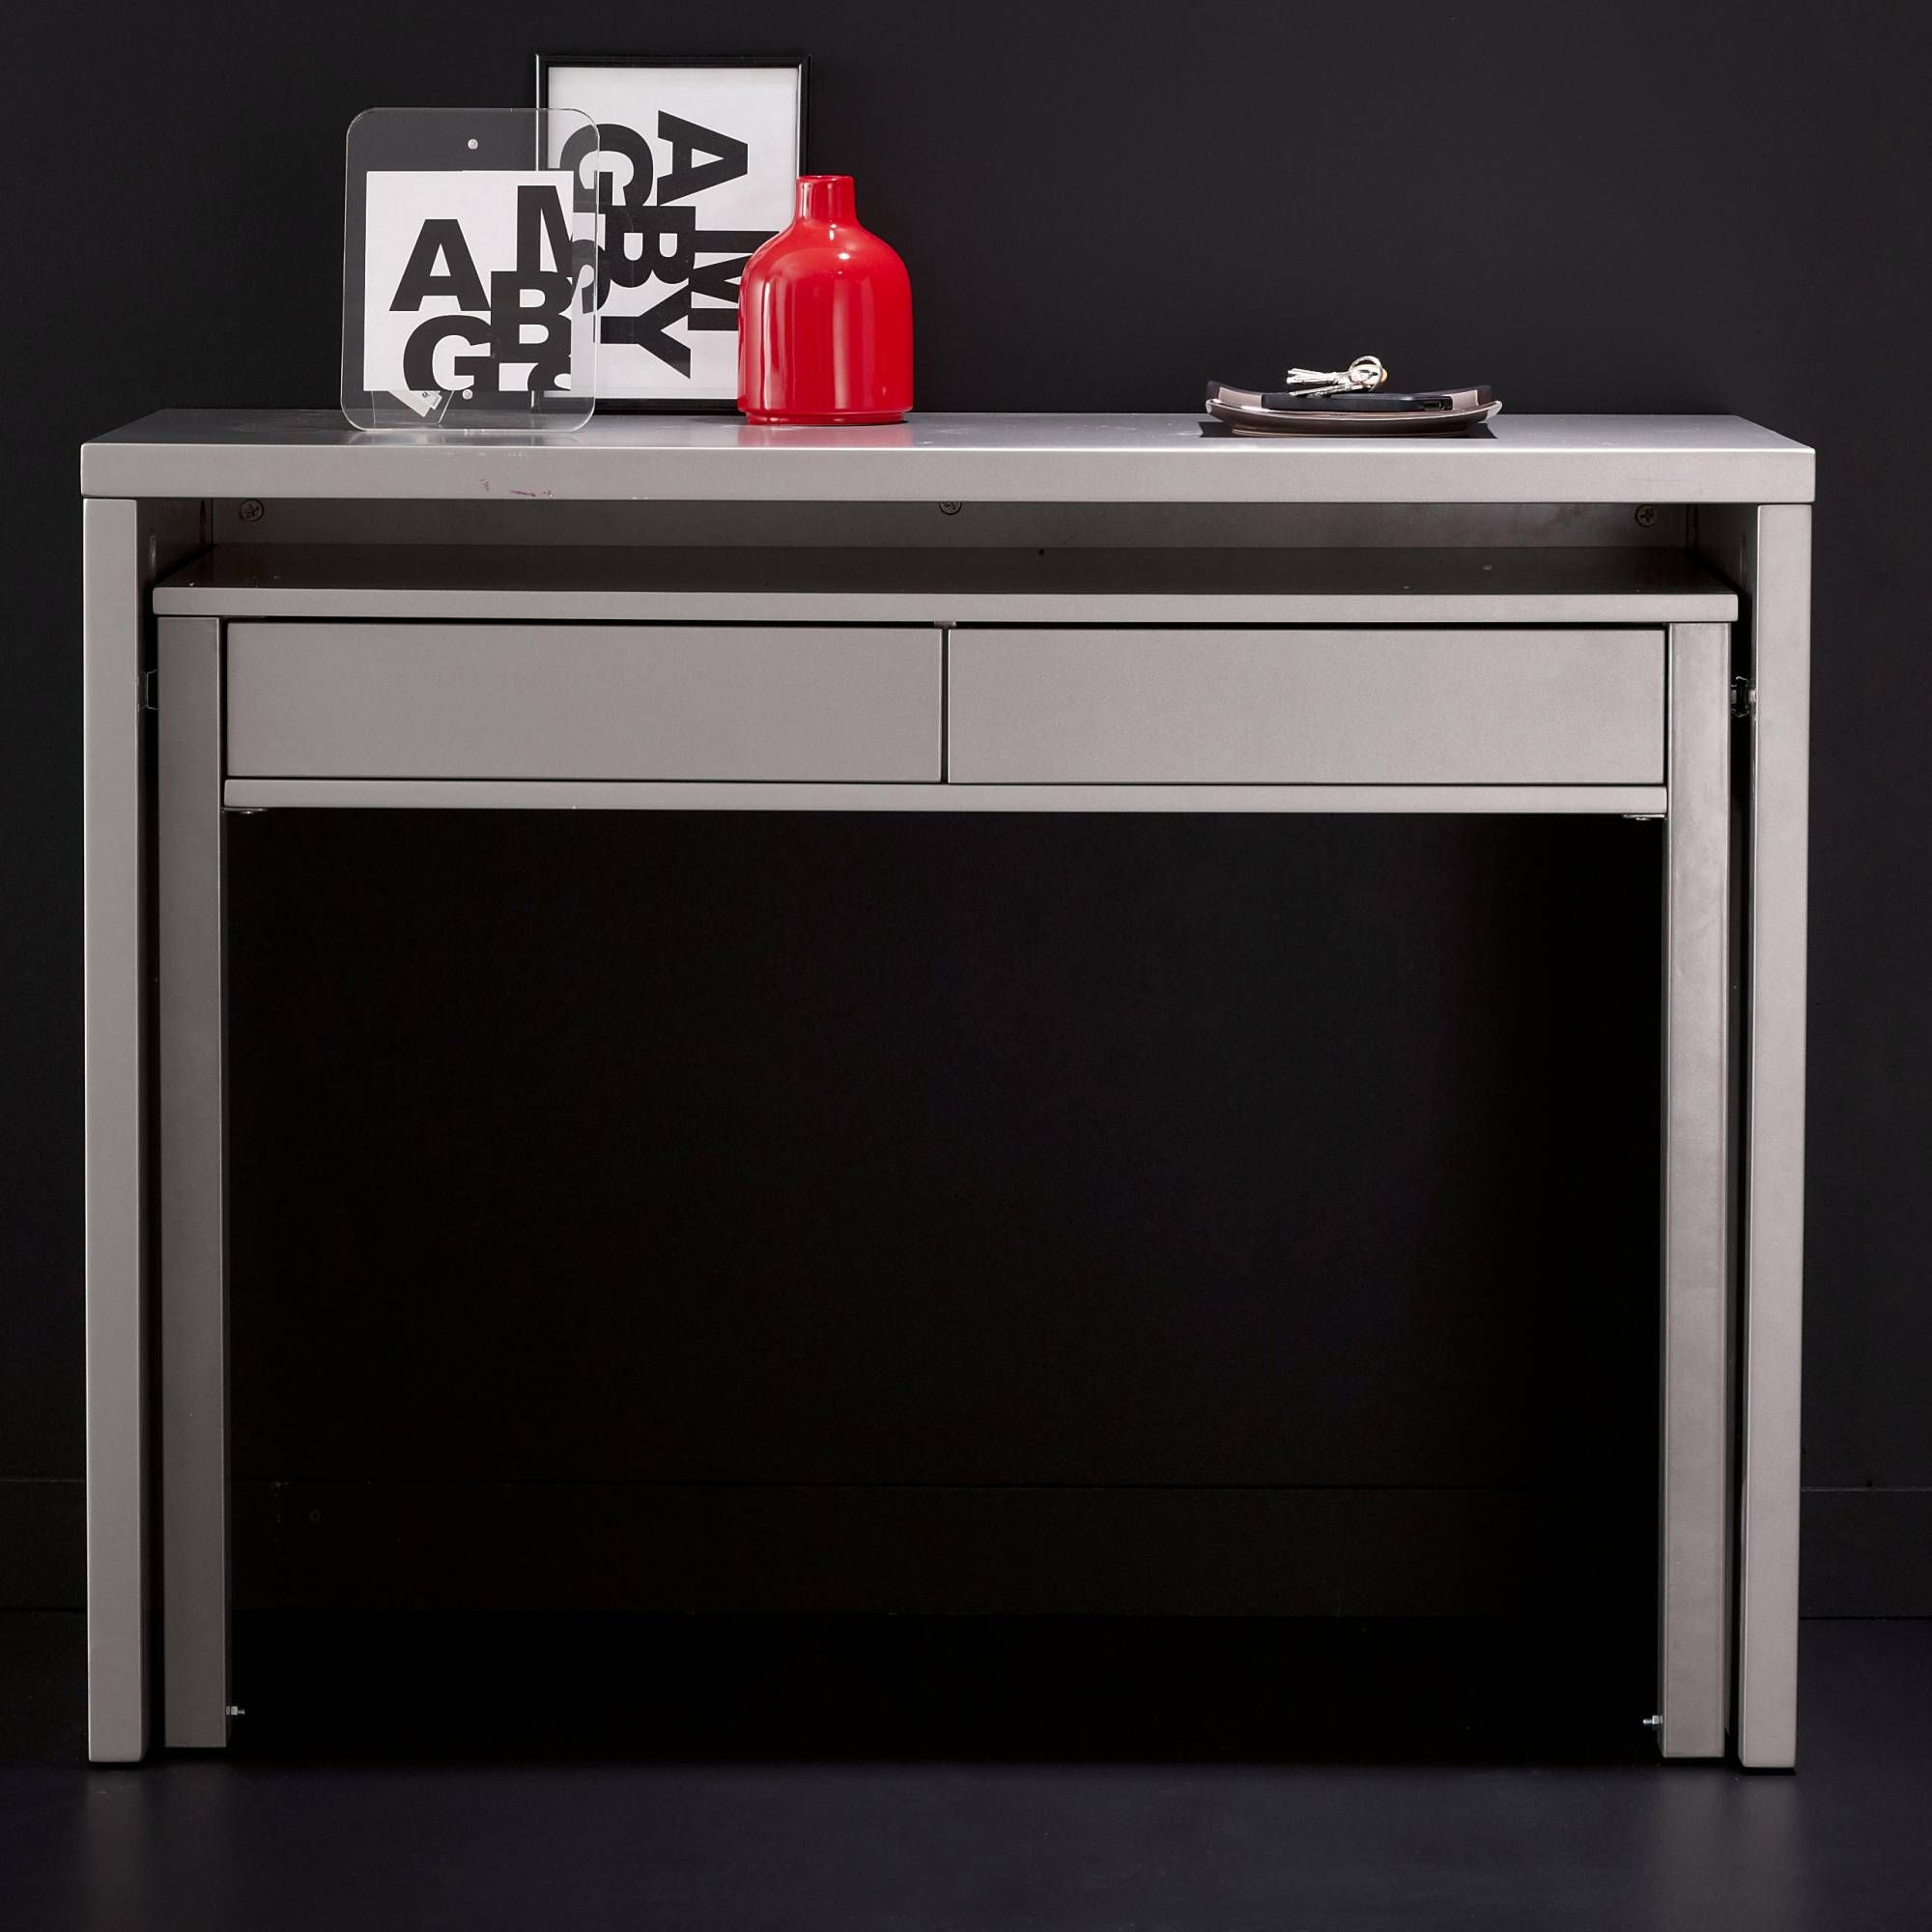 bureau console 2 tiroirs 3 suisses dimensions dimensions tiroirs largeur 40 8 hauteur 12. Black Bedroom Furniture Sets. Home Design Ideas